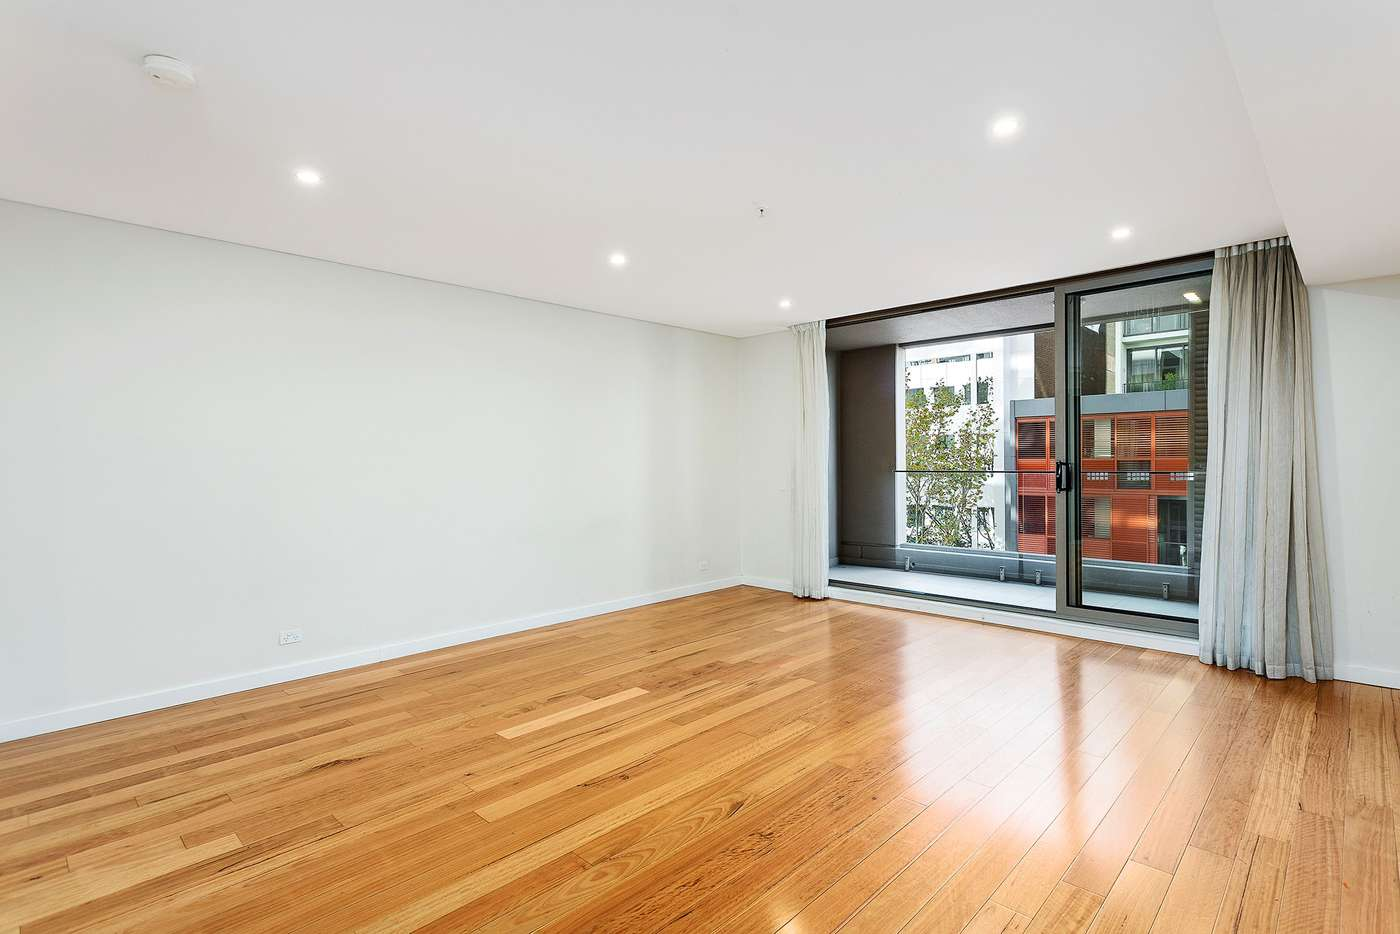 Main view of Homely apartment listing, 302/5 Atchison St, St Leonards NSW 2065